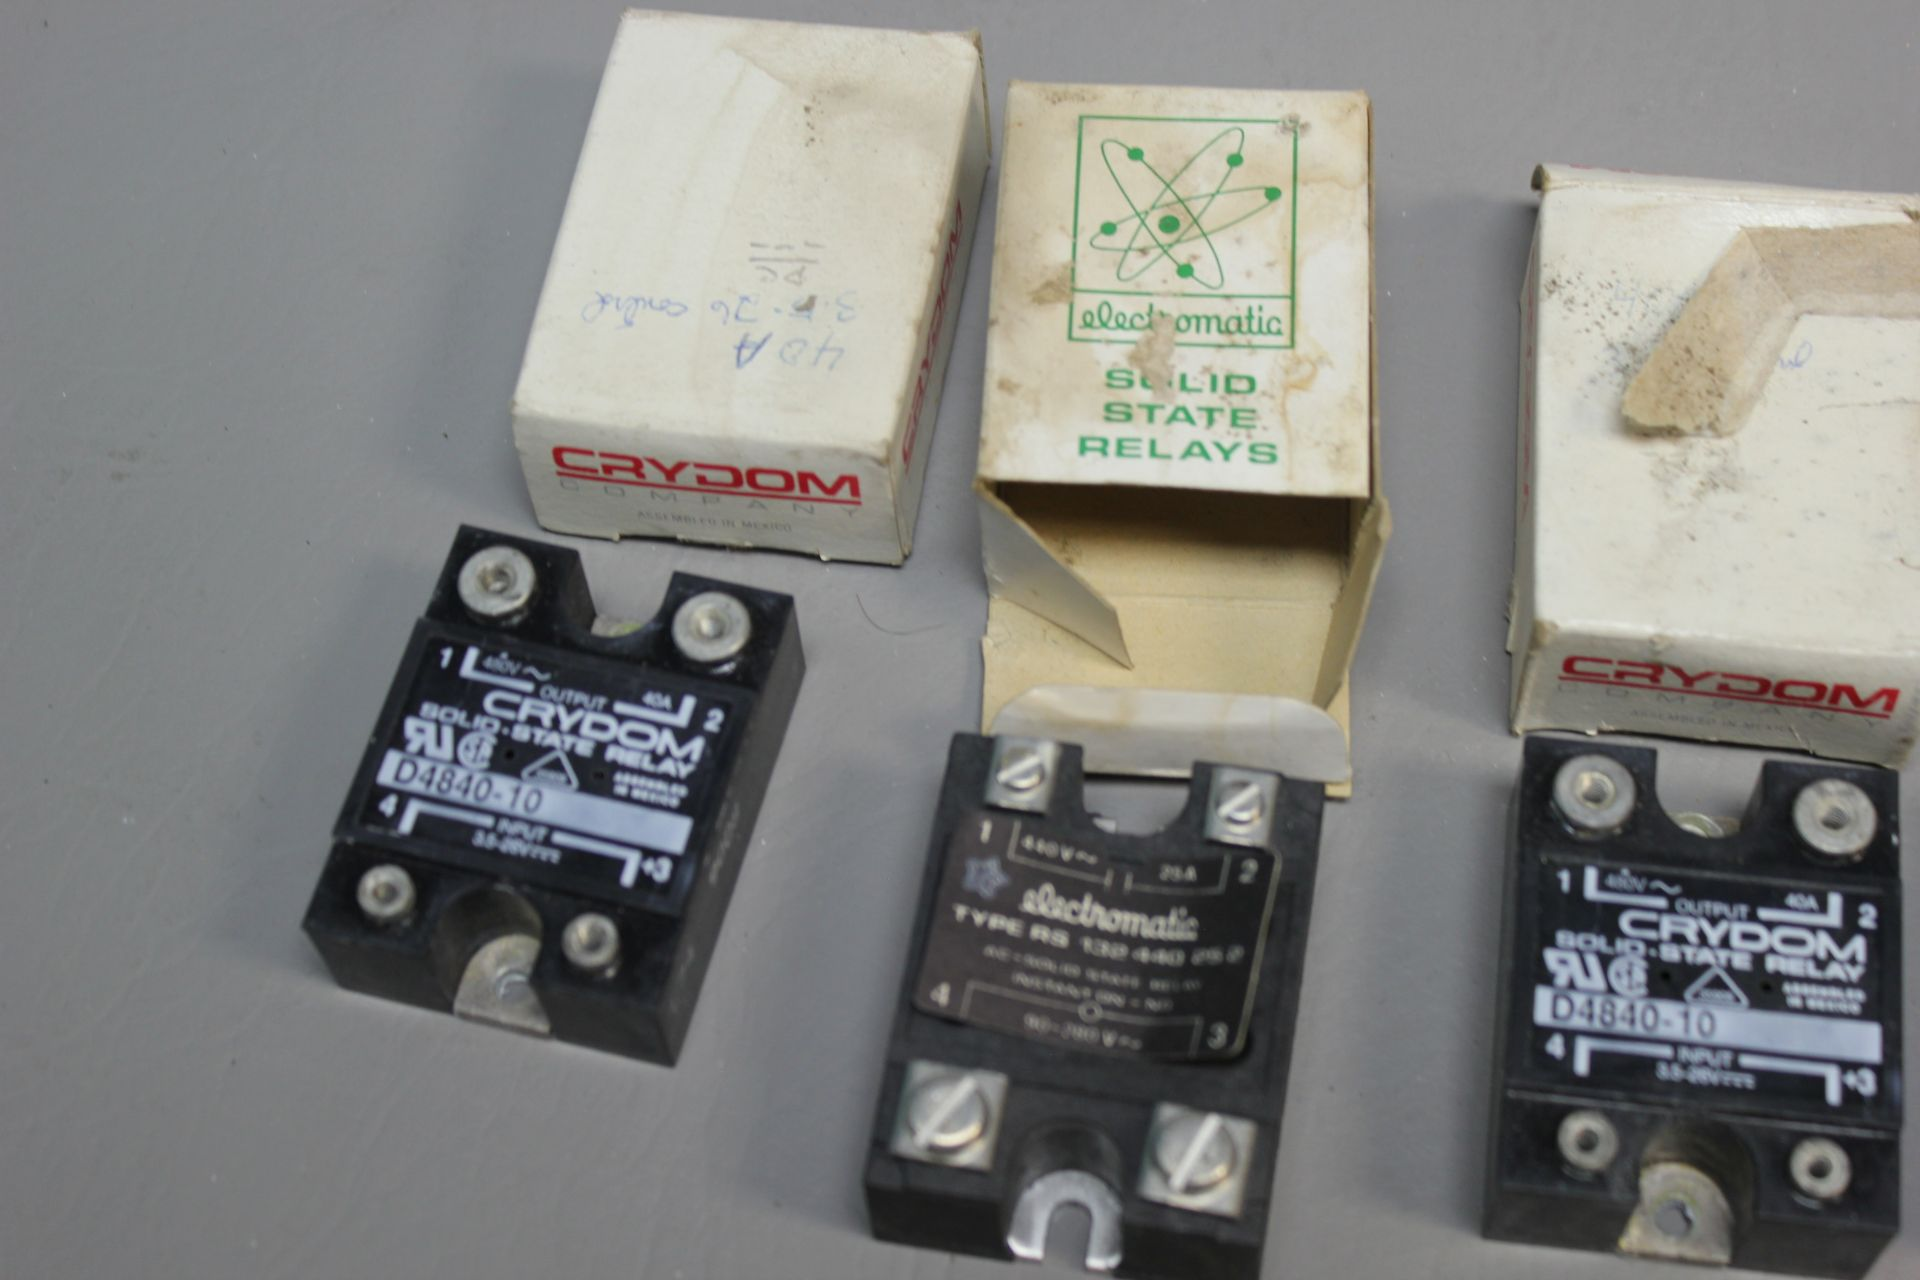 LOT OF NEW SOLID STATE RELAYS - Image 2 of 8